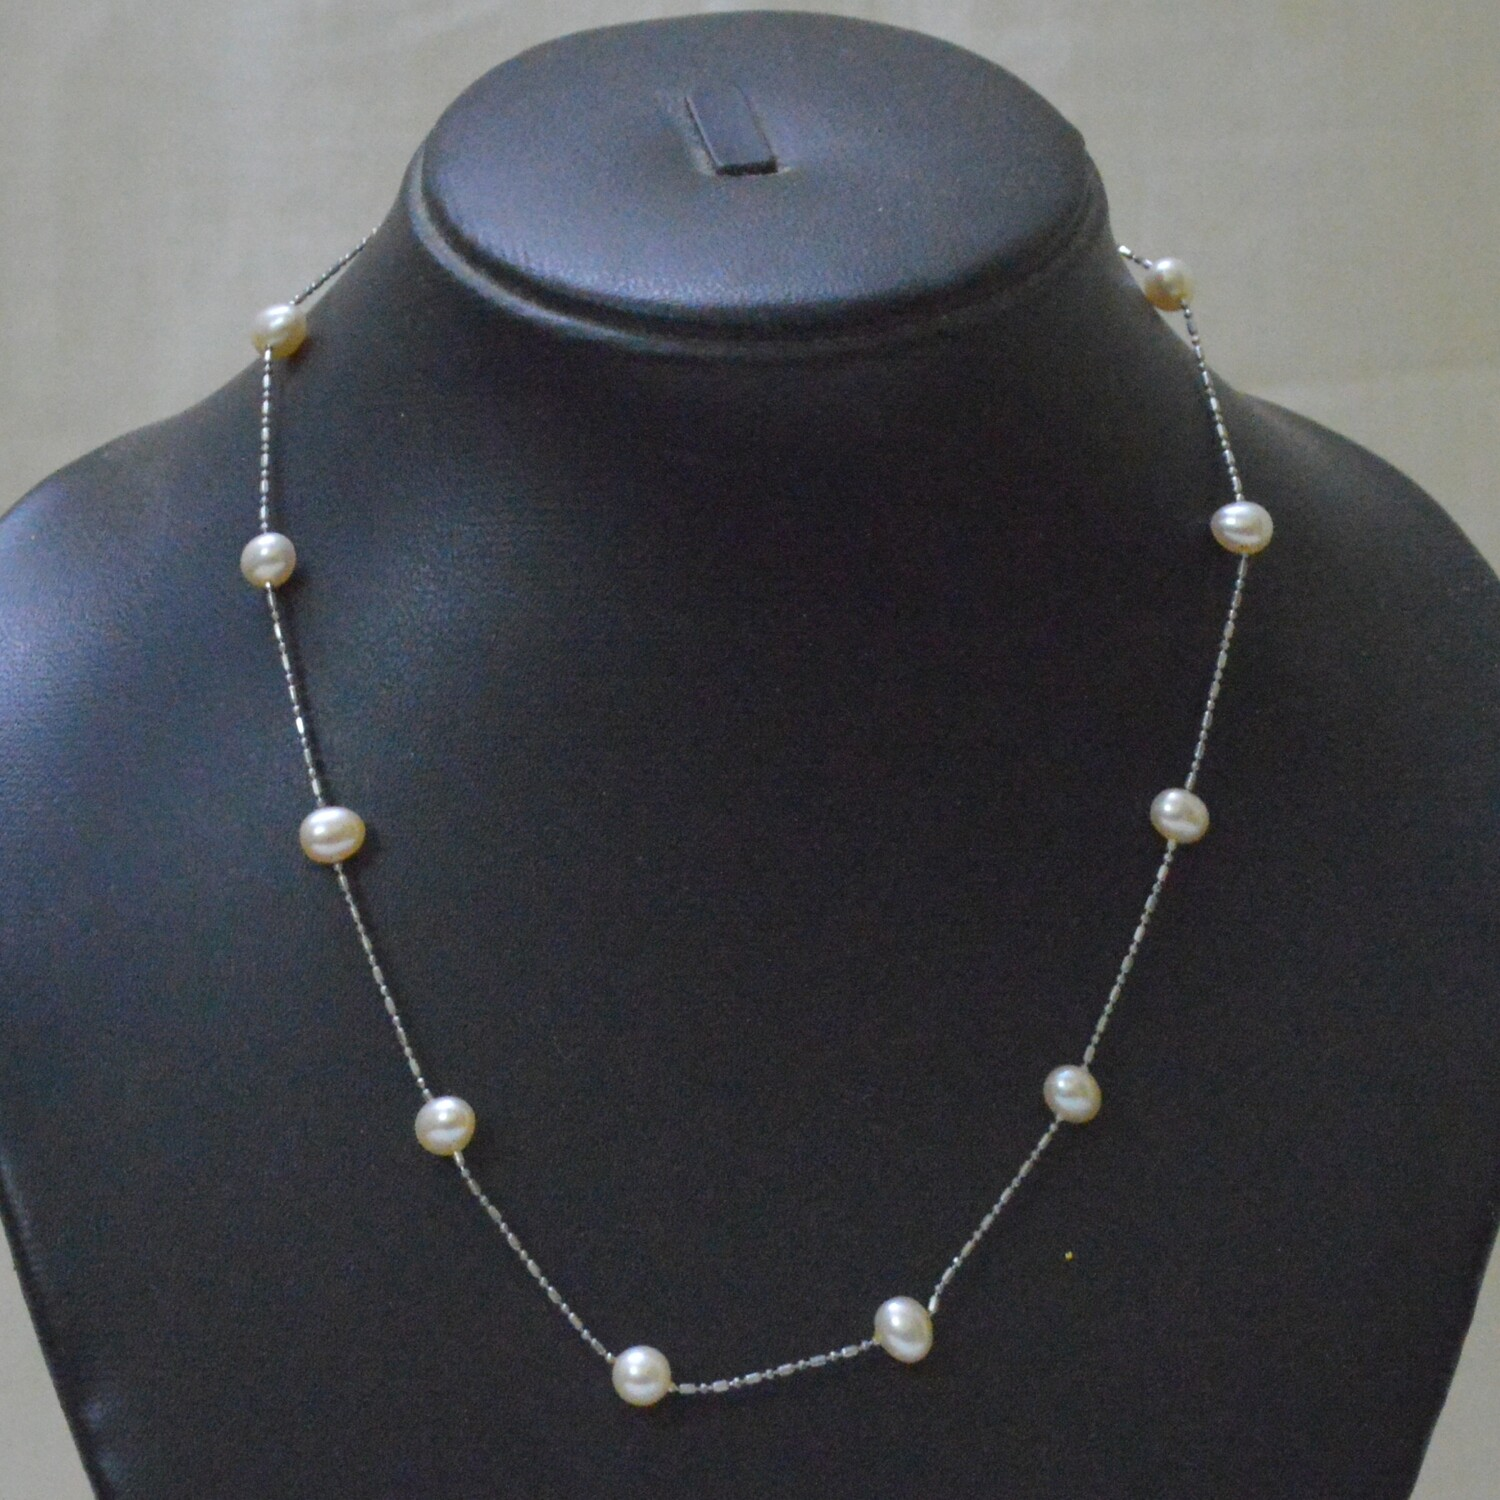 SINGLE LINE FRESHWATER CULTURE PEARLS METAL CHAIN